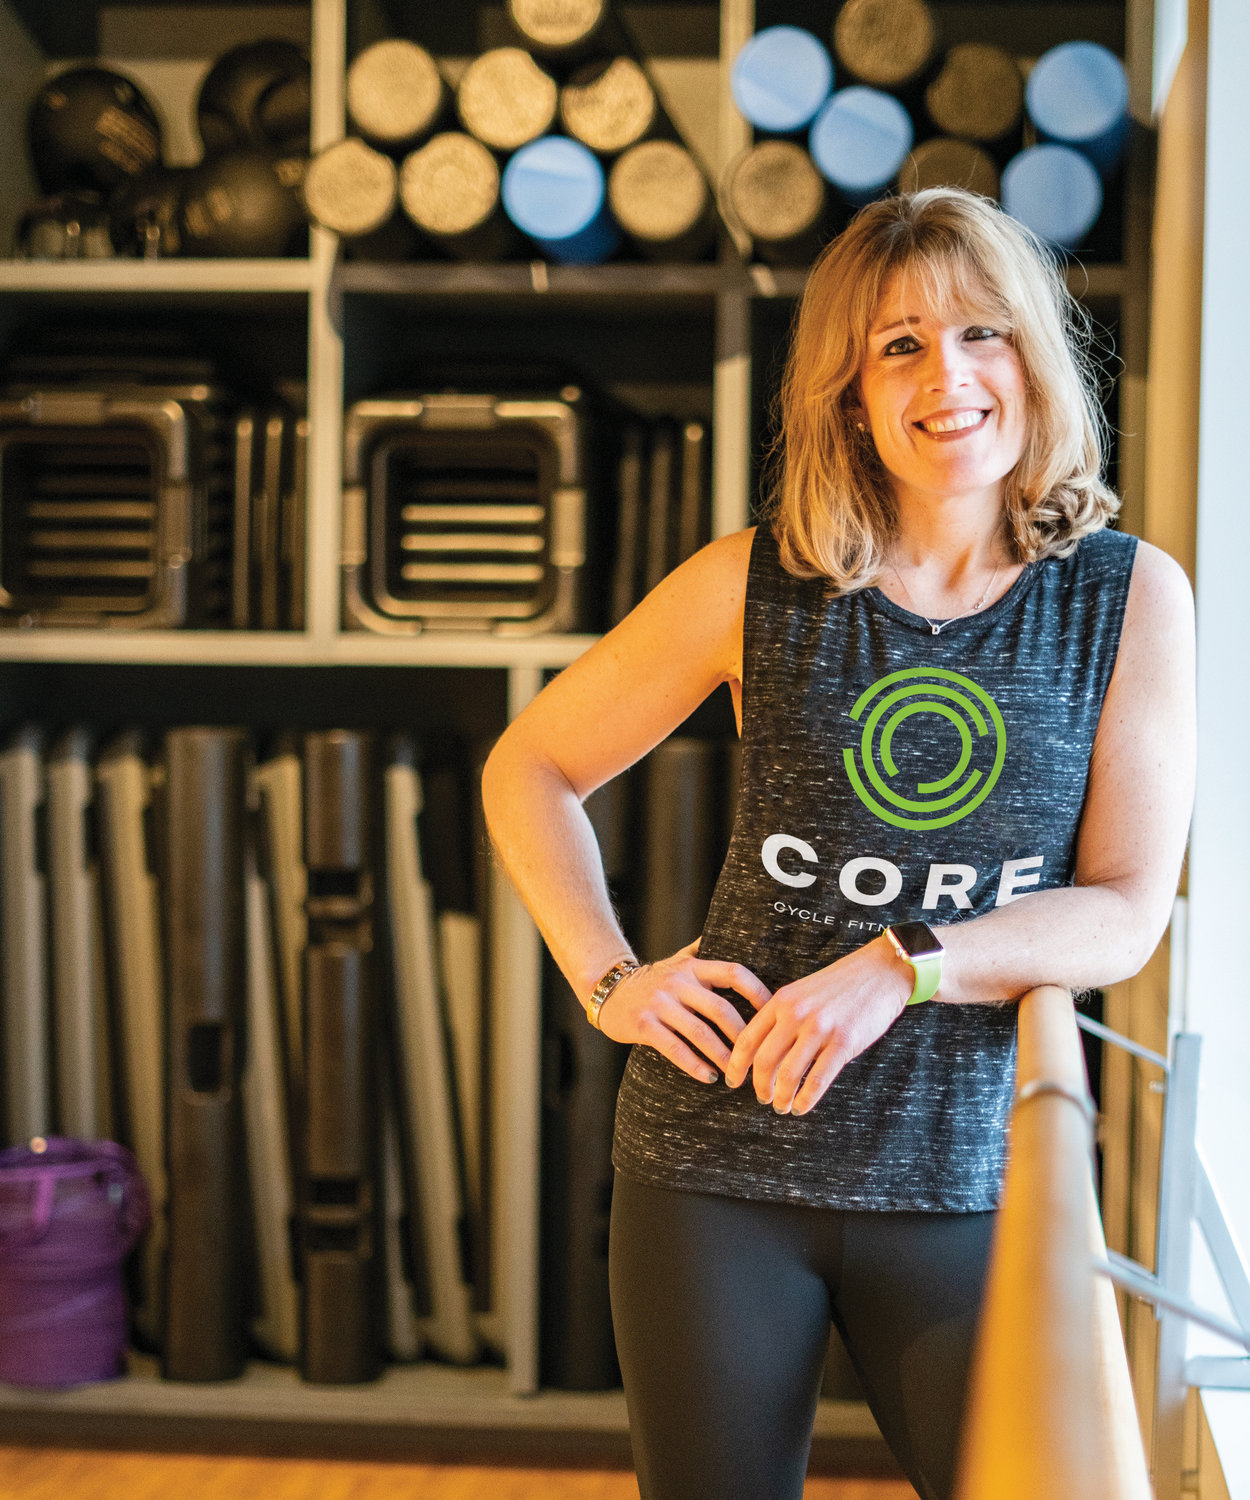 Leading Ladies 2019: Denise Chakoian, Fitness Expert/Owner of CORE in Providence and Pawtucket